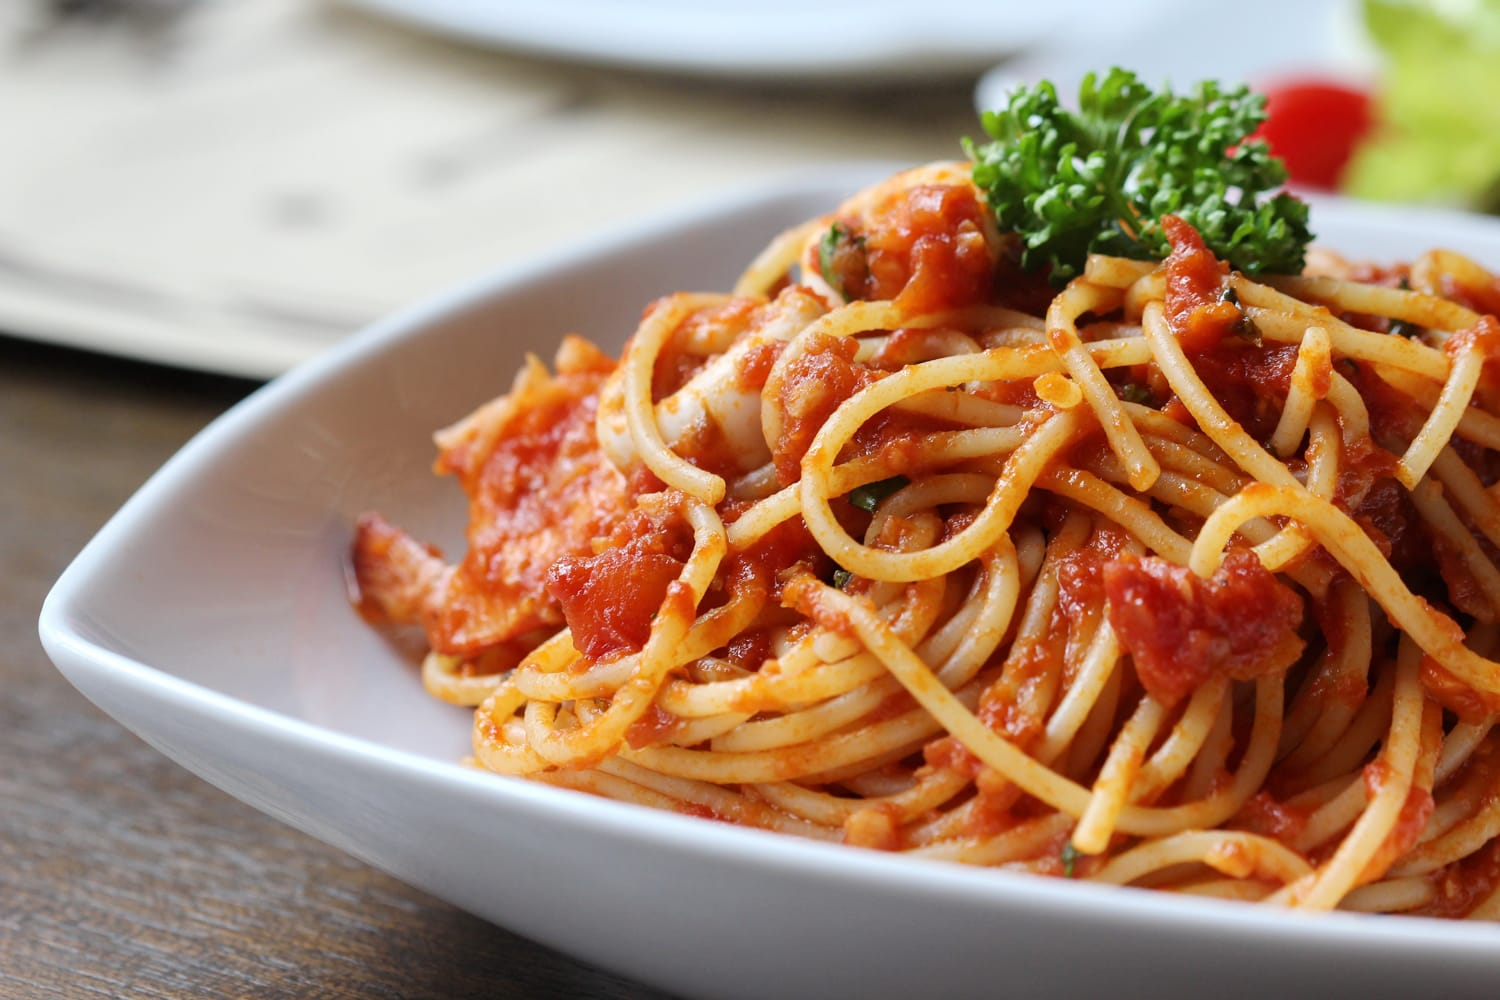 Low angle view of a serving of fresh Italian spaghetti with a meat based bolognese or bolognaise with tomato sauce on a plain white plate